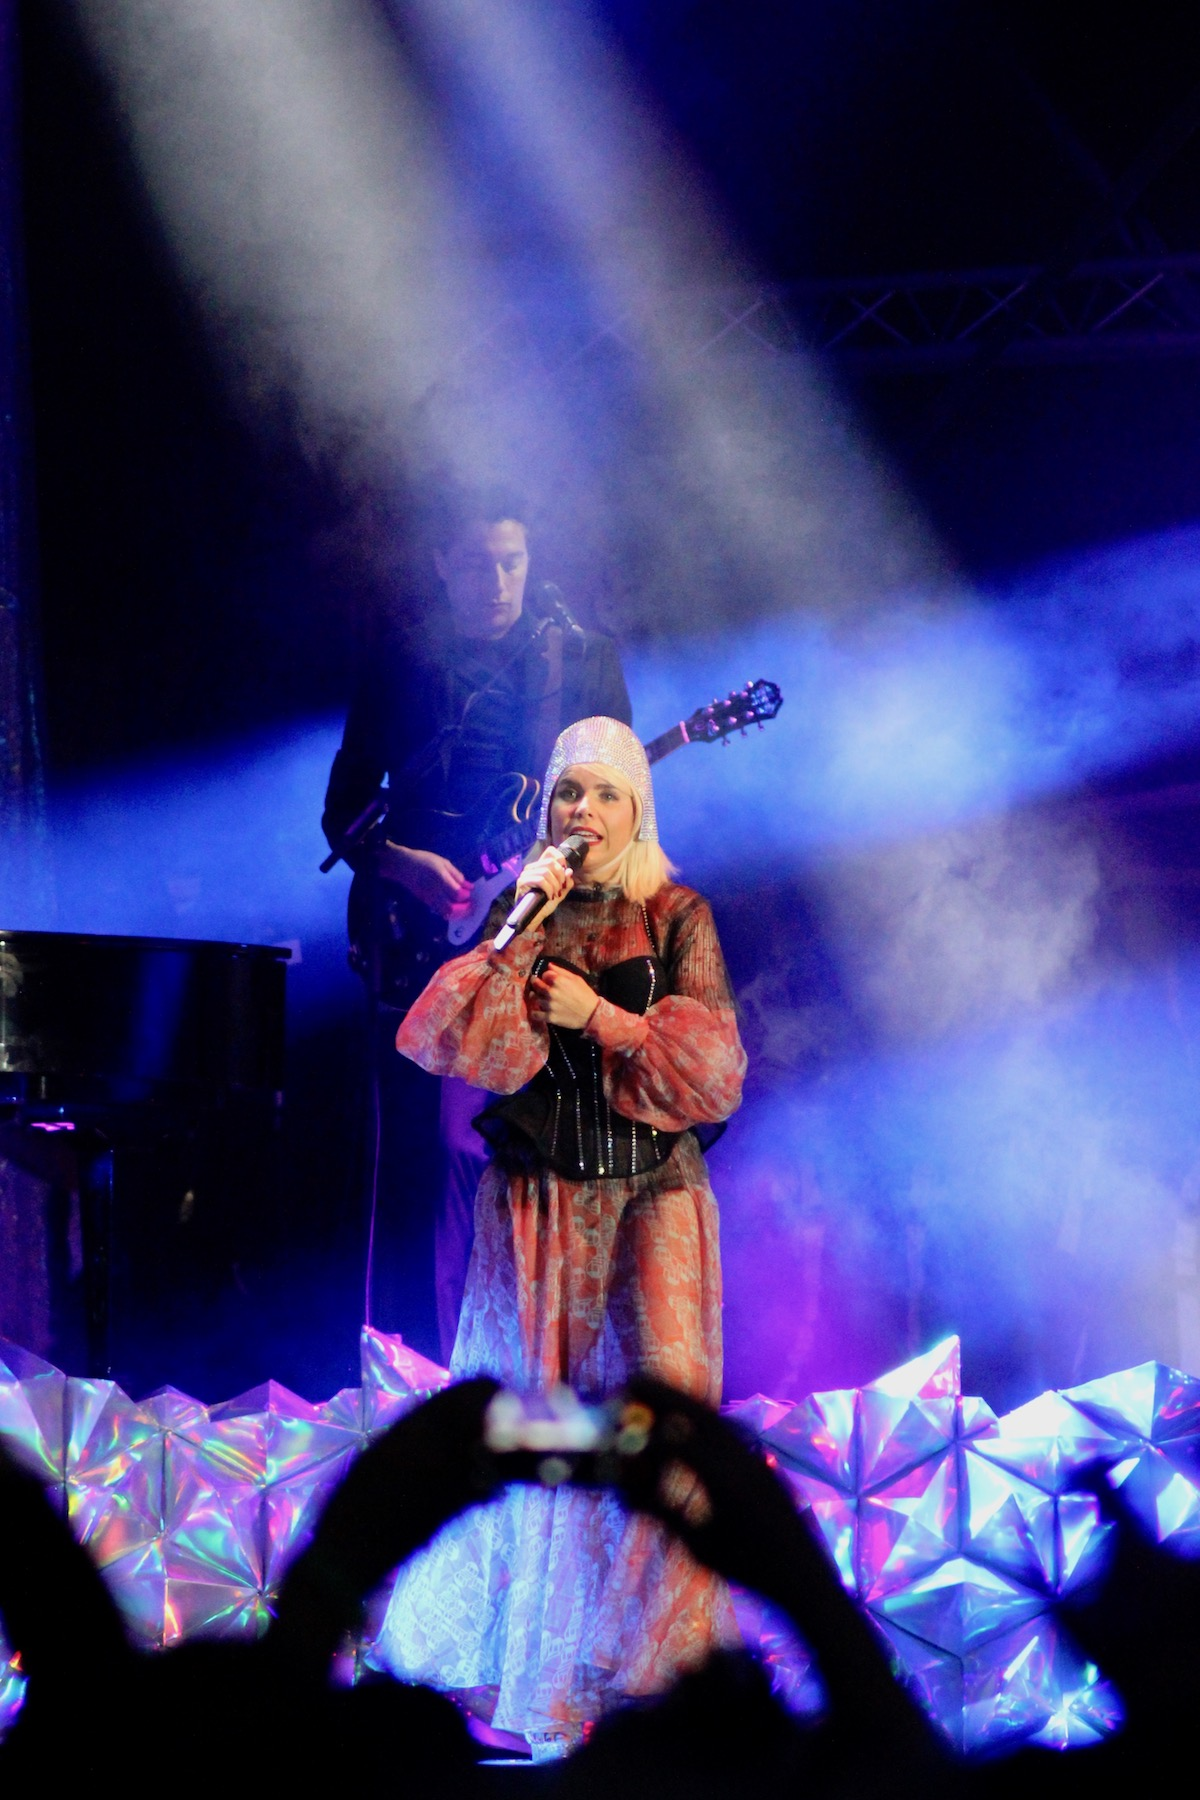 Paloma Faith 1 - The Bands of Belladrum 2018 - IMAGES